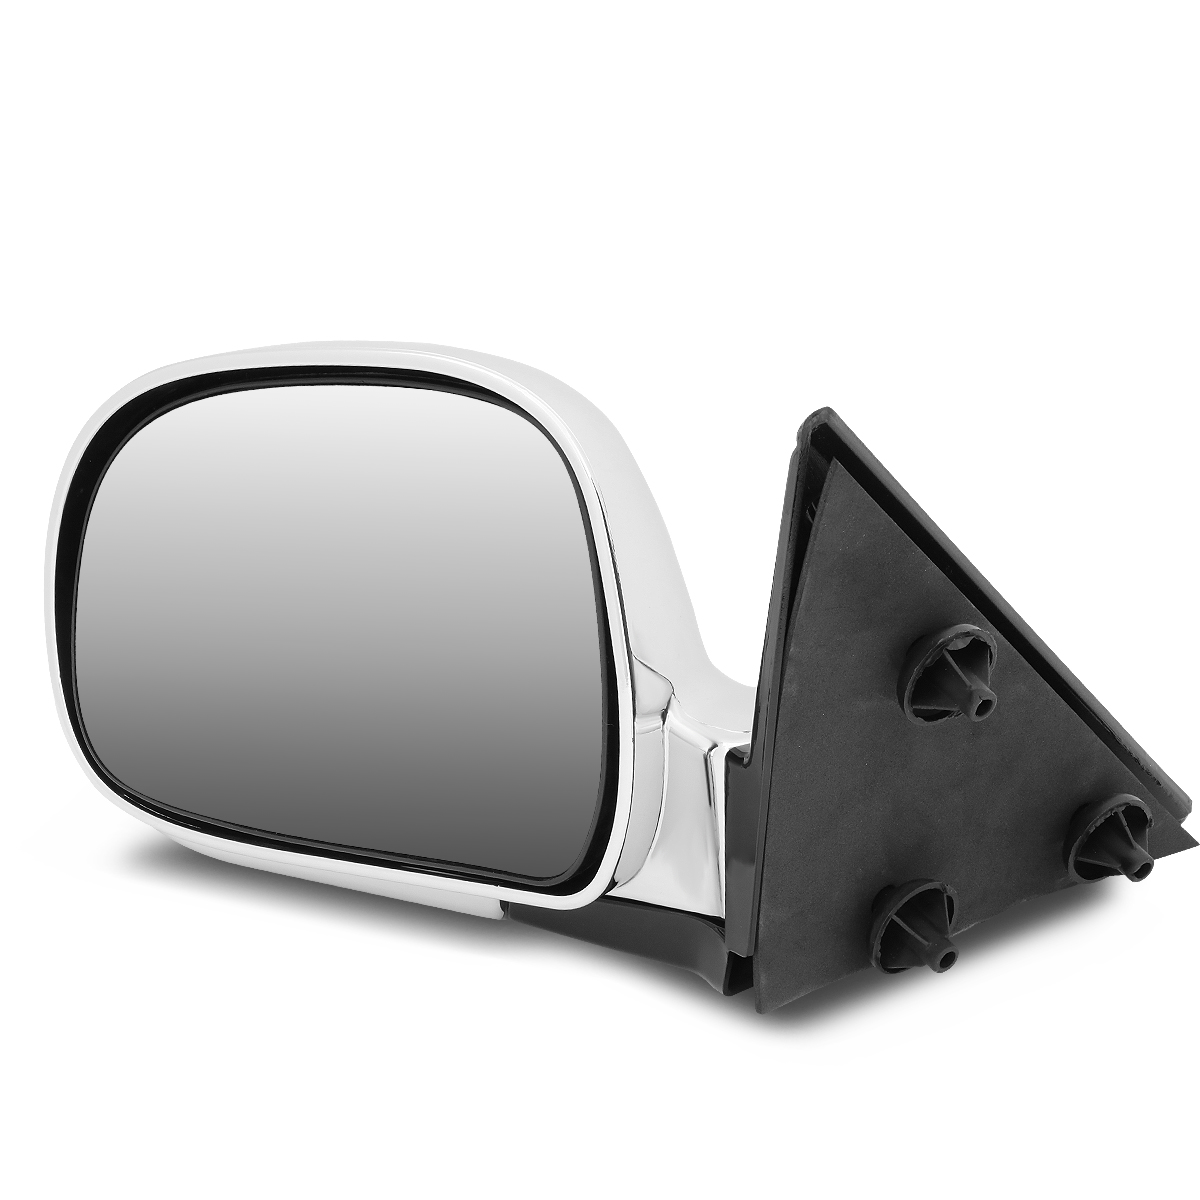 1994 1995 1996 1997 1998 Driver Side Mirror for Chevy S10 Blazer GMC Sonoma Jimmy Isuzu Hombre Oldsmobile Bravada Smooth Black Non-Heated Folding Left Rear View Replacement Door Mirror GM1320126